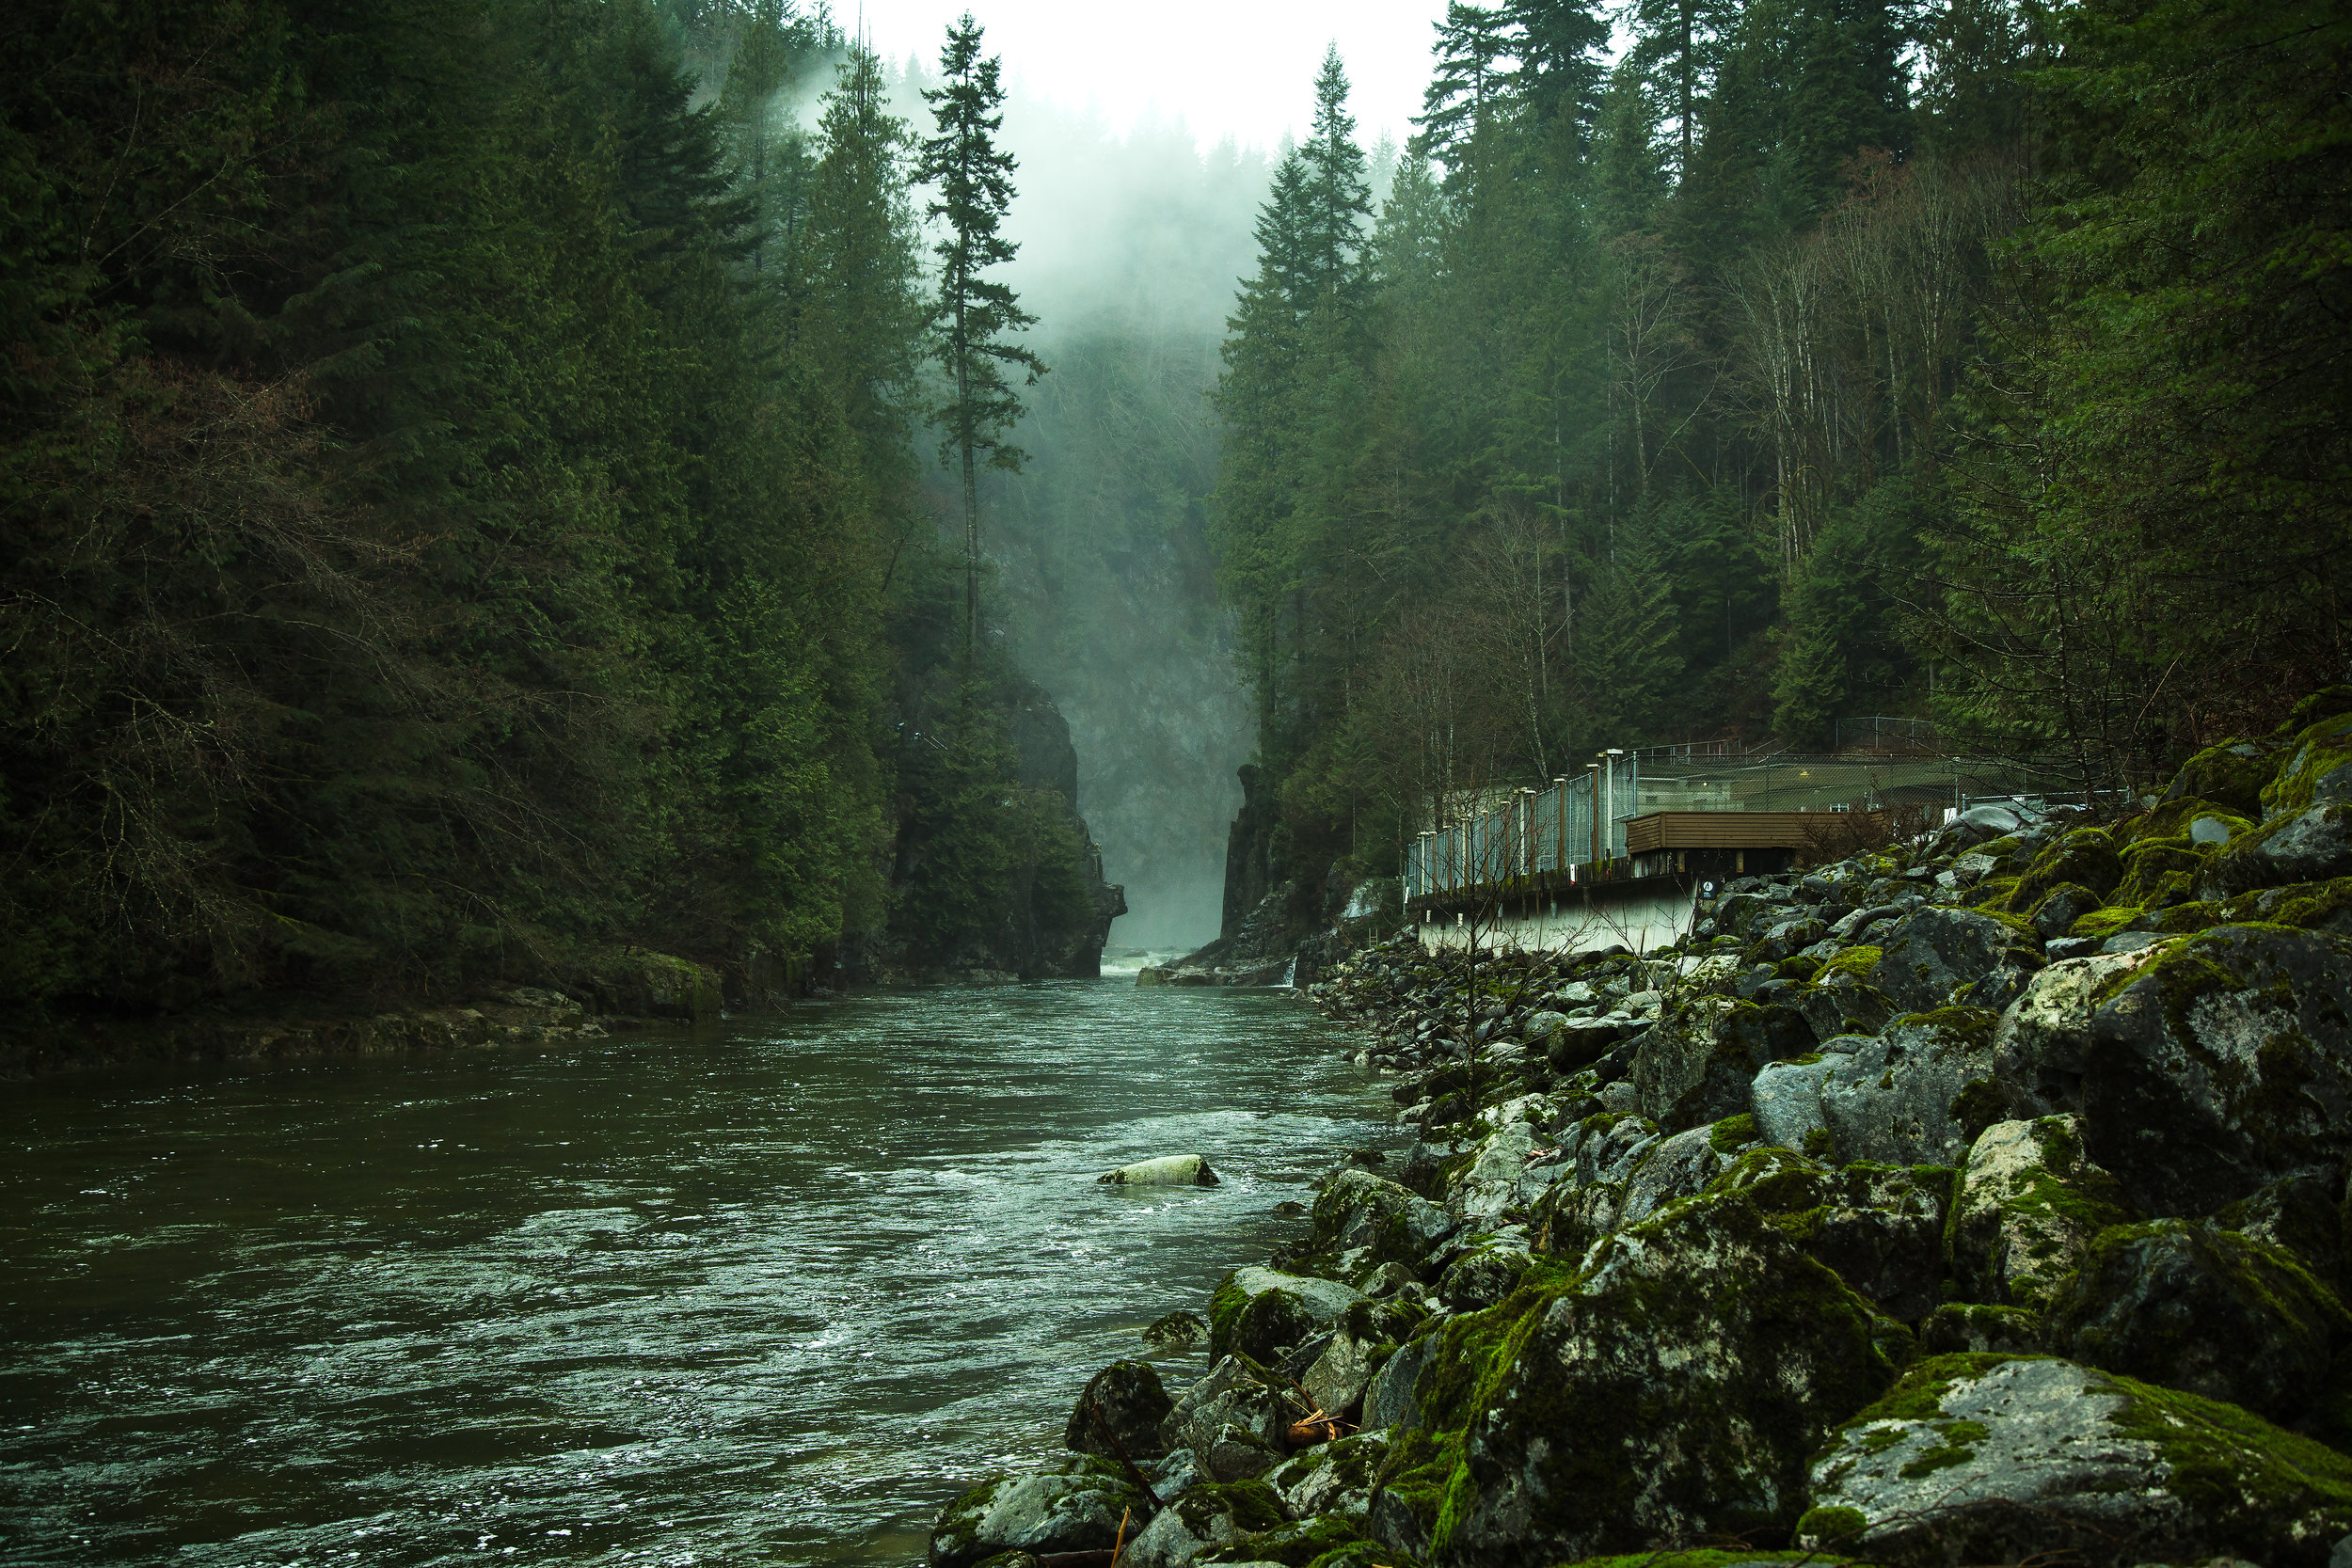 Capilano River Canyon near Vancouver, BC. It wasn't a sunny day, but the clouds and the mist added to the rustic green atmosphere.